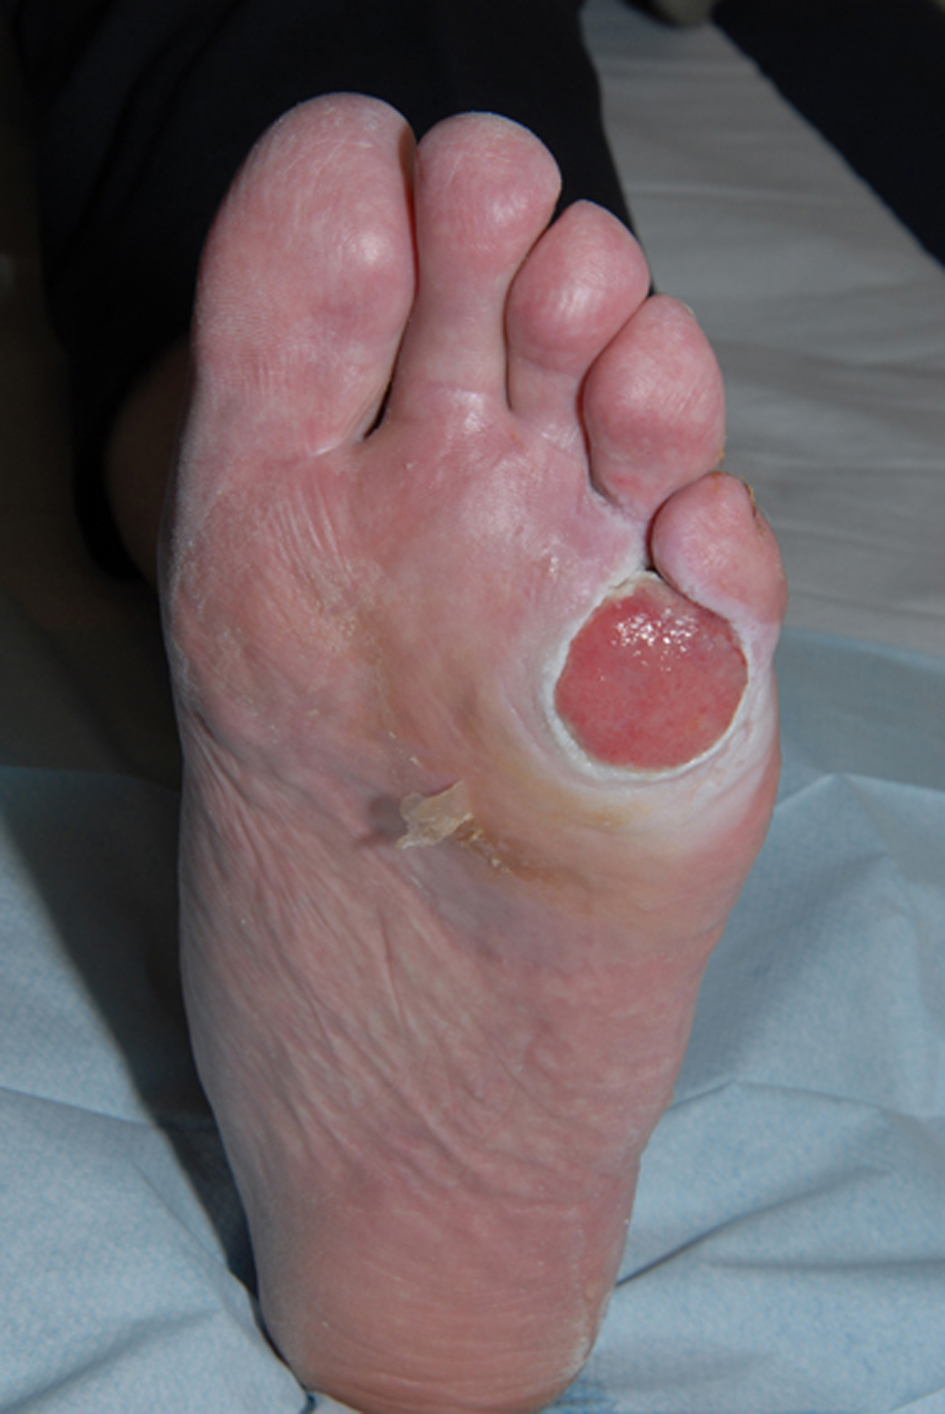 Amelanotic Melanoma Presenting as a Neuropathic Ulcer in a ...